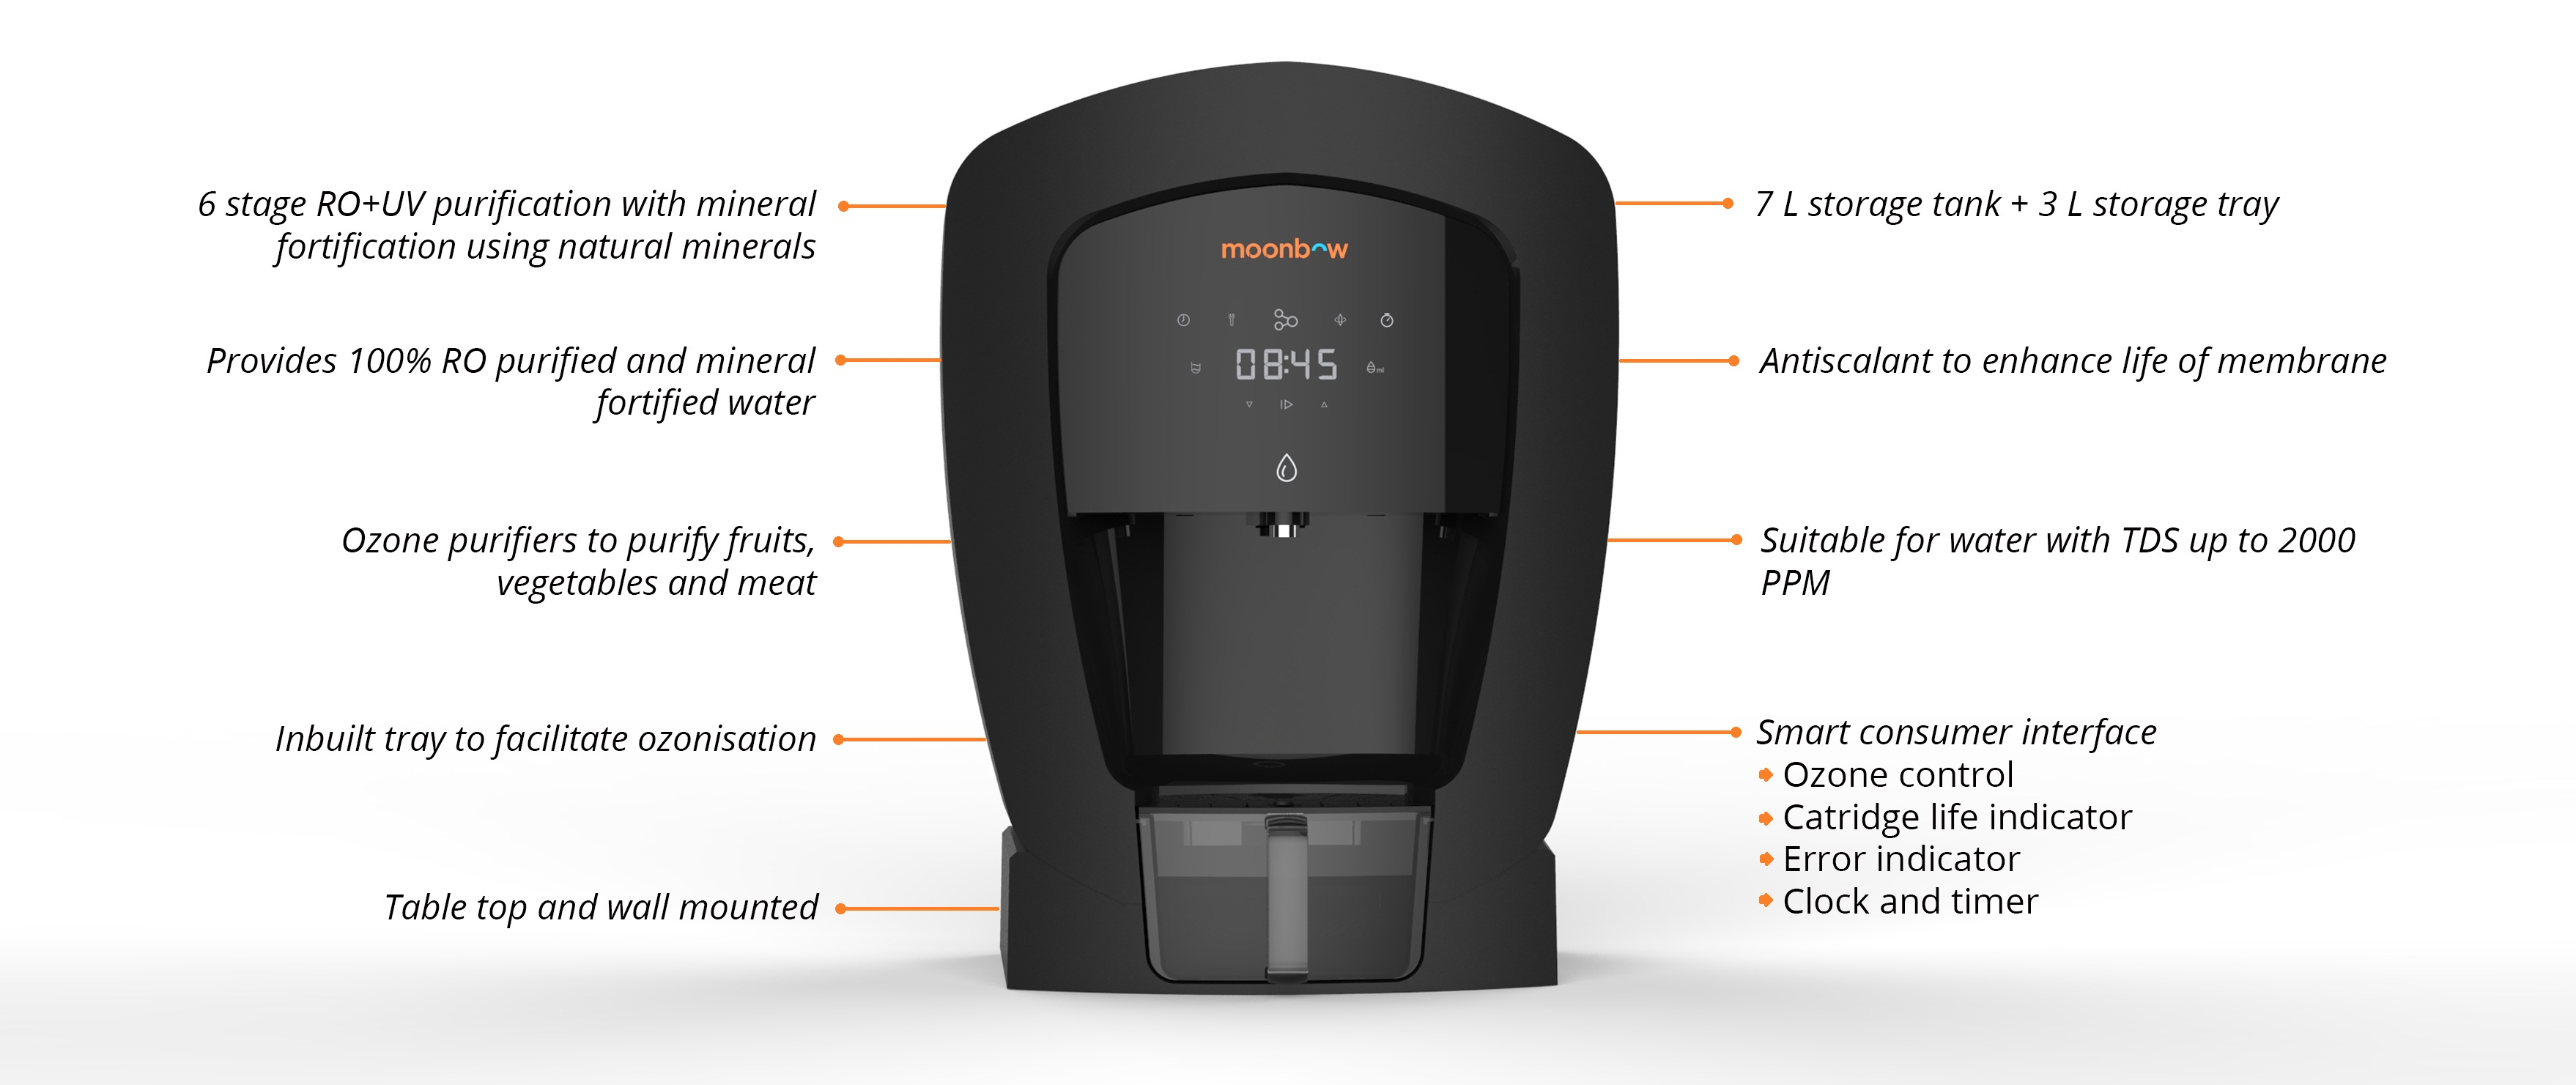 waterpurifier design specifications